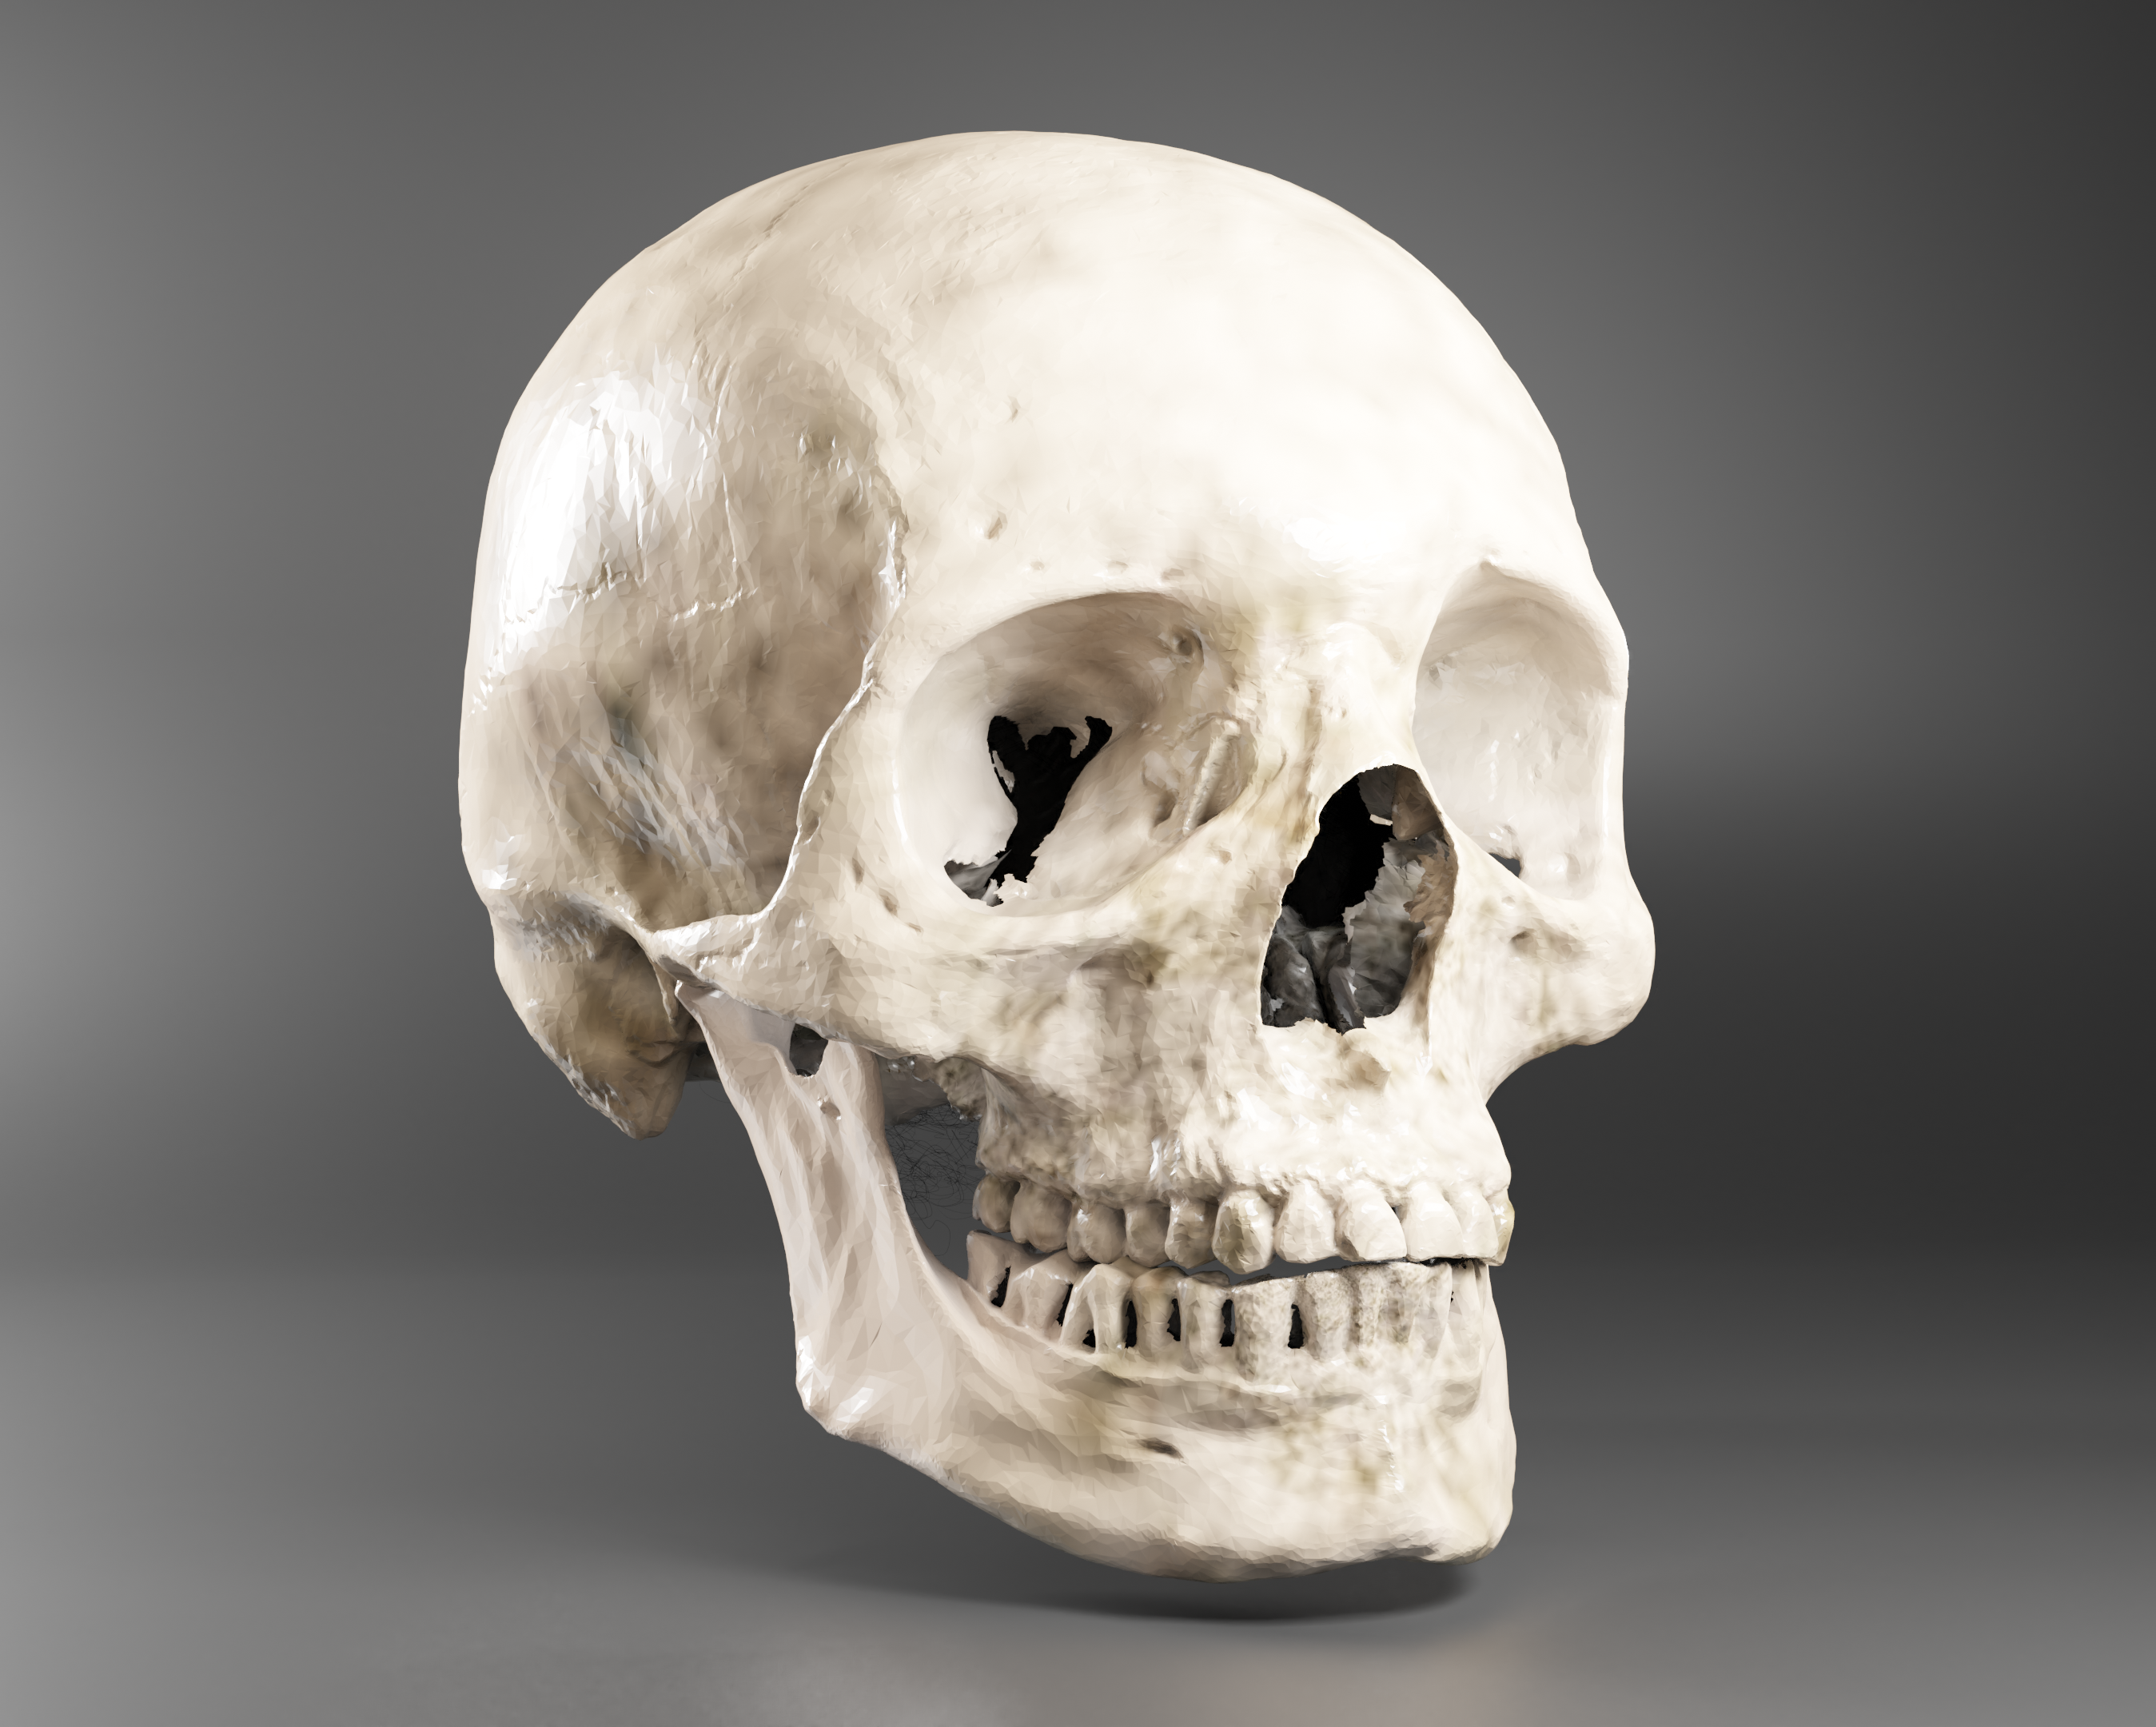 3D scan of a skull